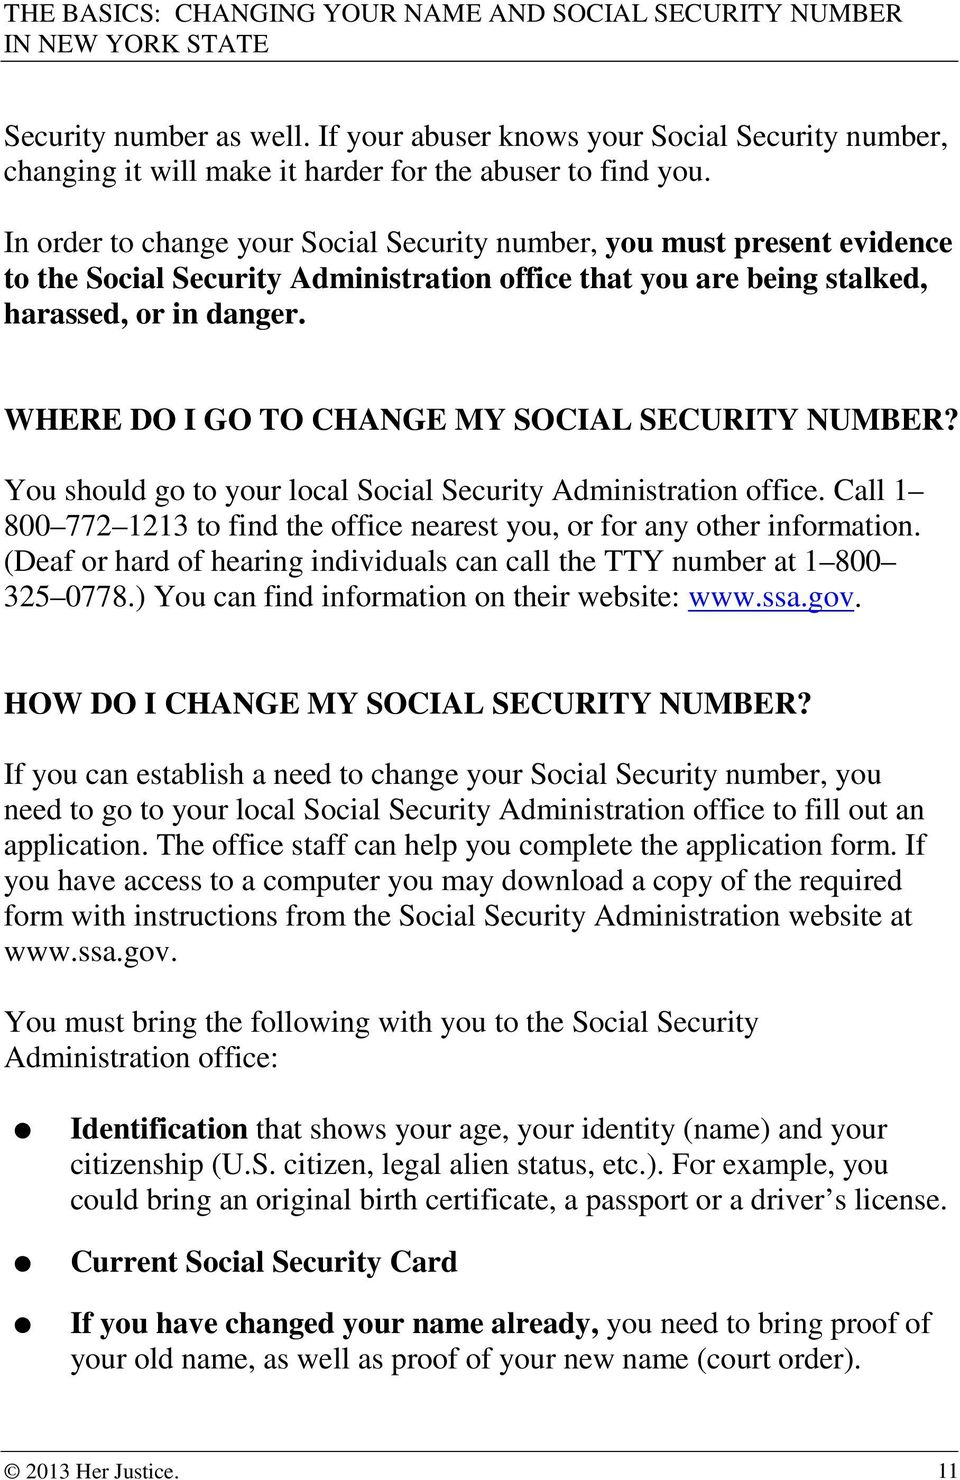 WHERE DO I GO TO CHANGE MY SOCIAL SECURITY NUMBER? You should go to your local Social Security Administration office. Call 1 800 772 1213 to find the office nearest you, or for any other information.